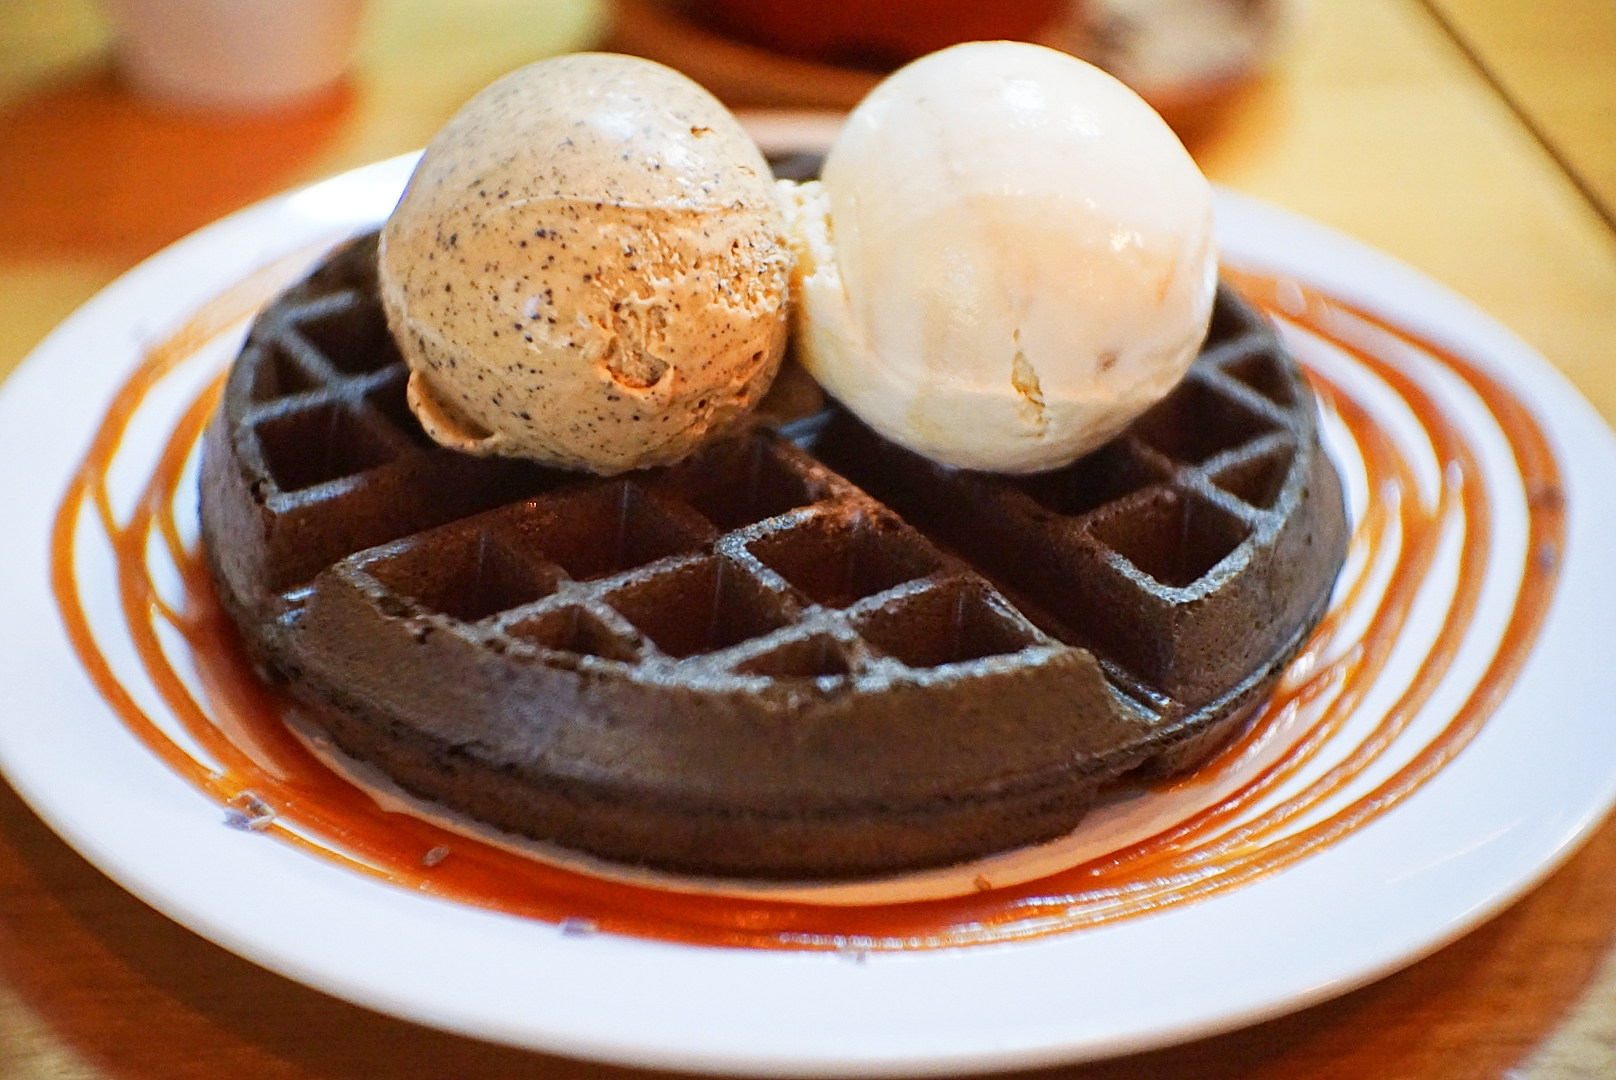 FATCAT charcoal waffles, with Butter Beer ice cream on the left and Butterscotch ice cream on the right. Served with salted caramel sauce and dried lavender garnish.